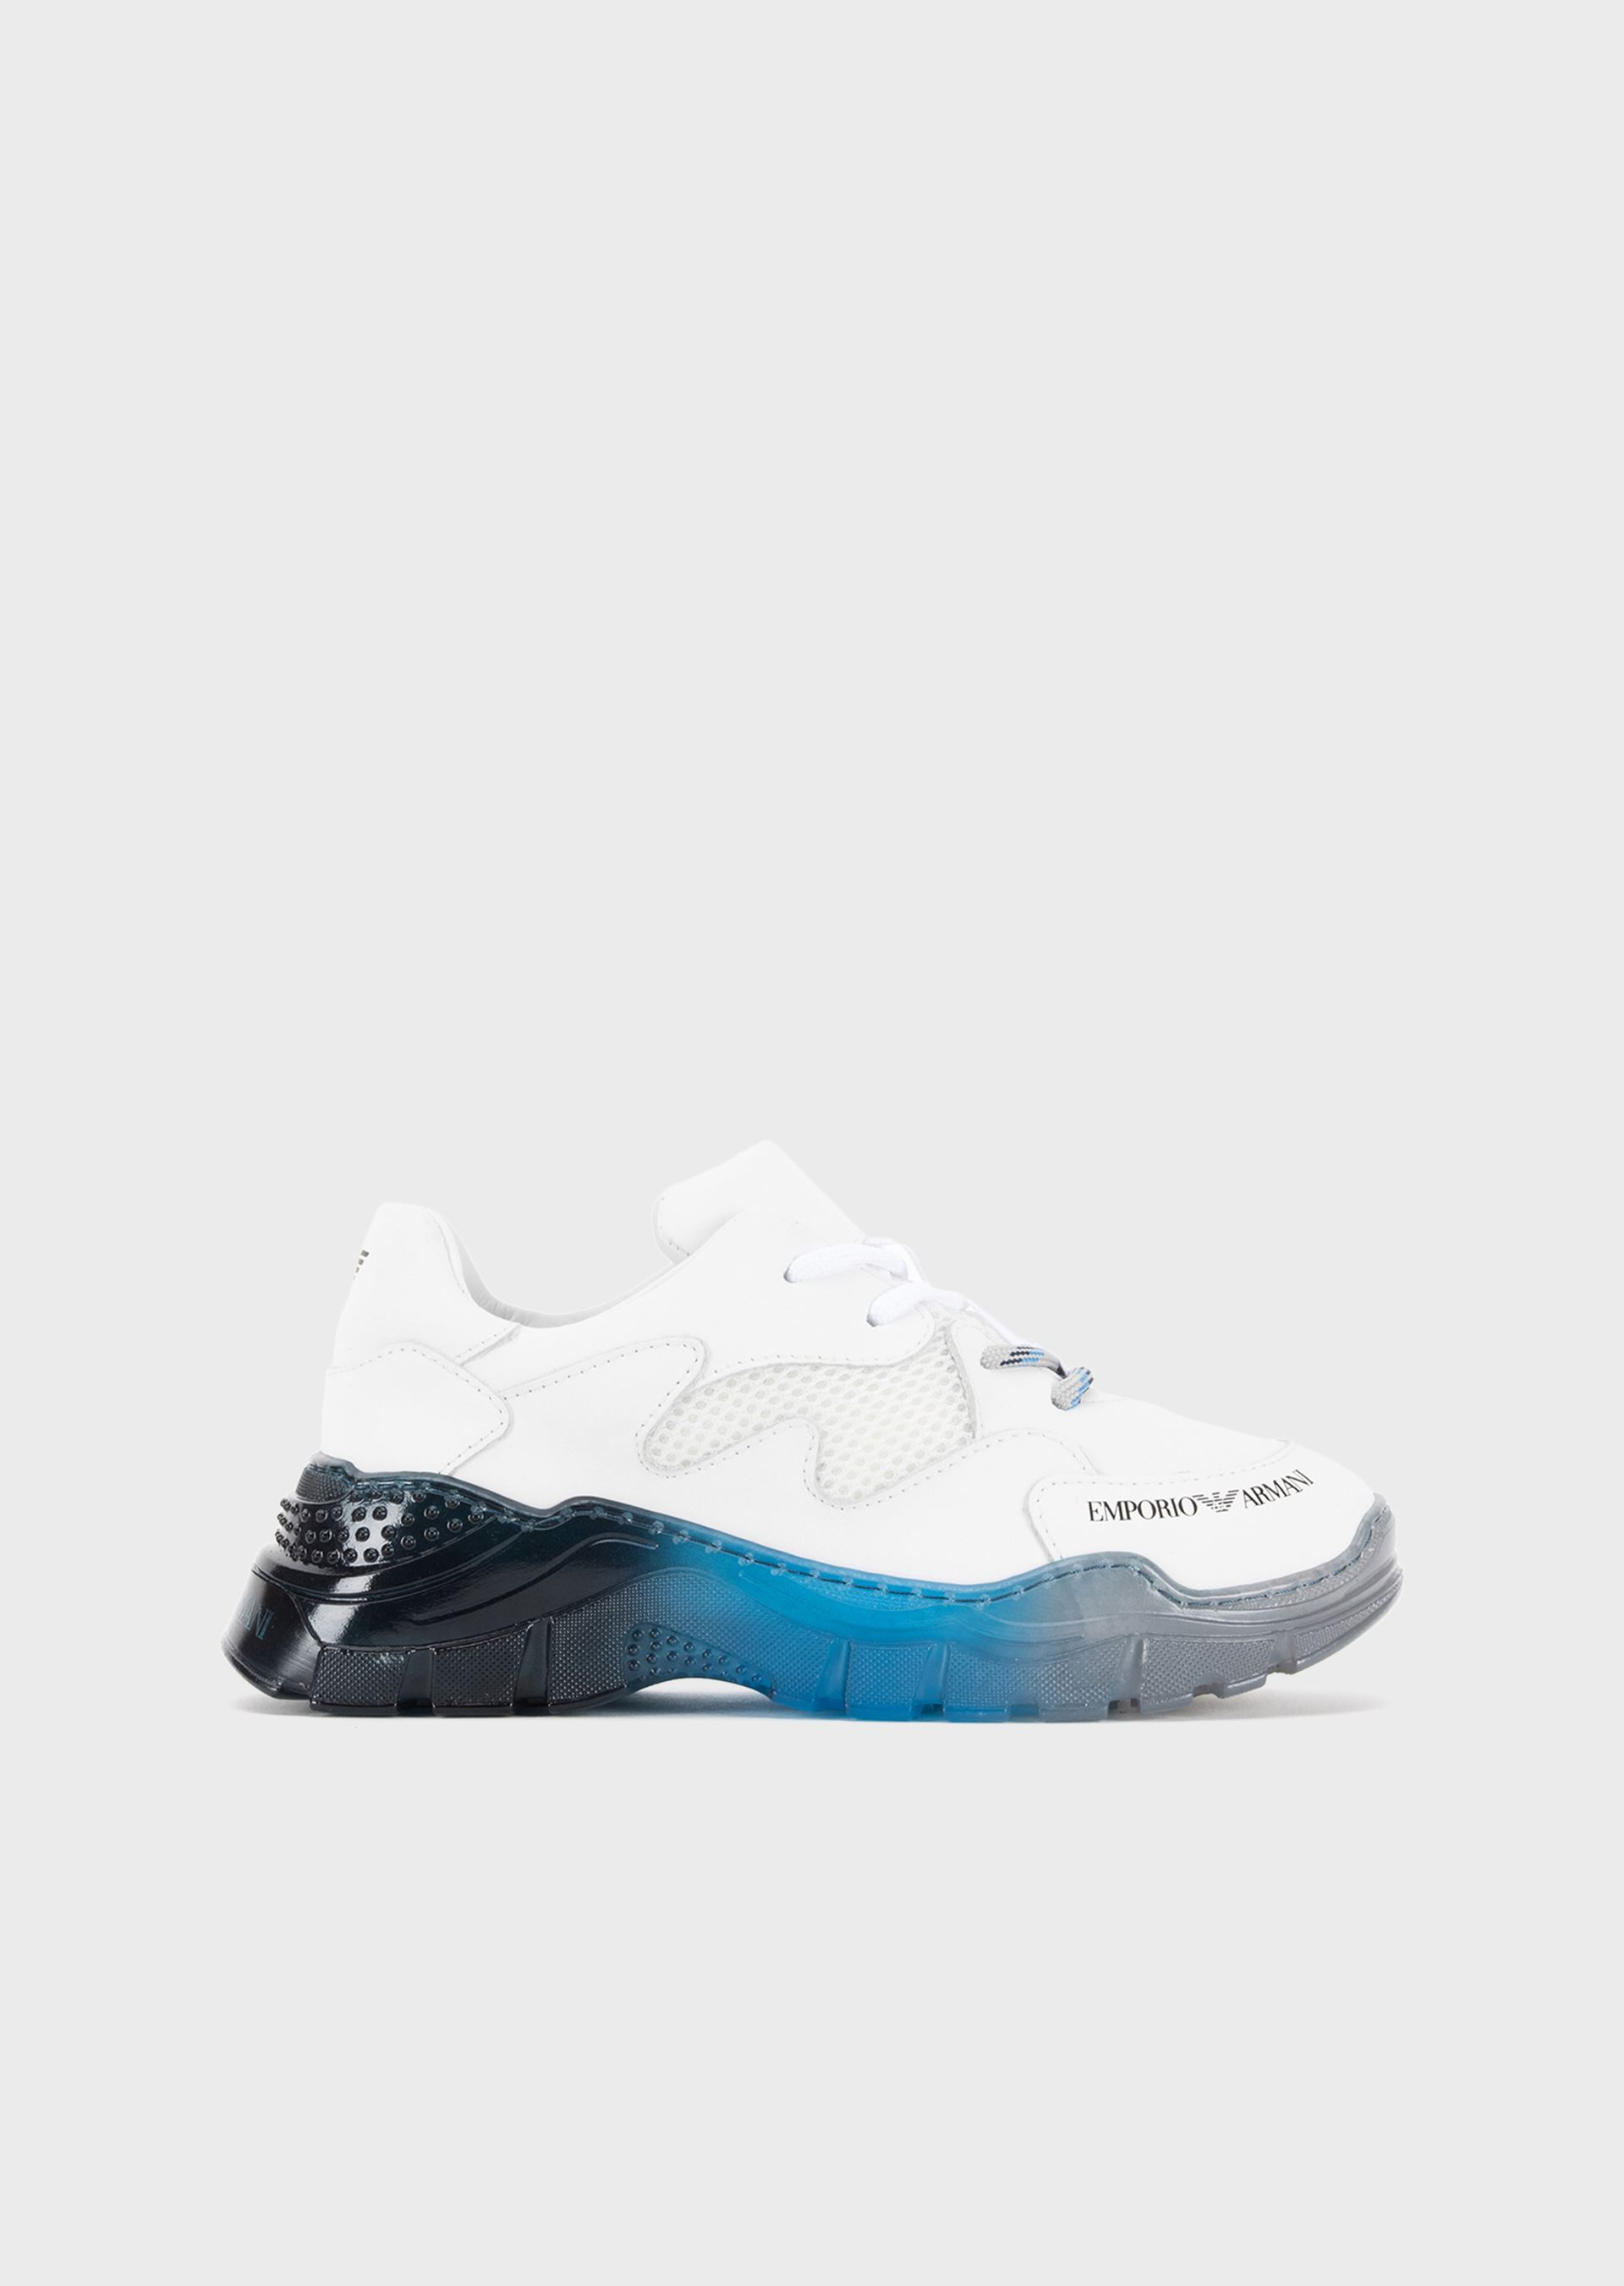 EMPORIO ARMANI Perforated leather sneakers with multicoloured soles